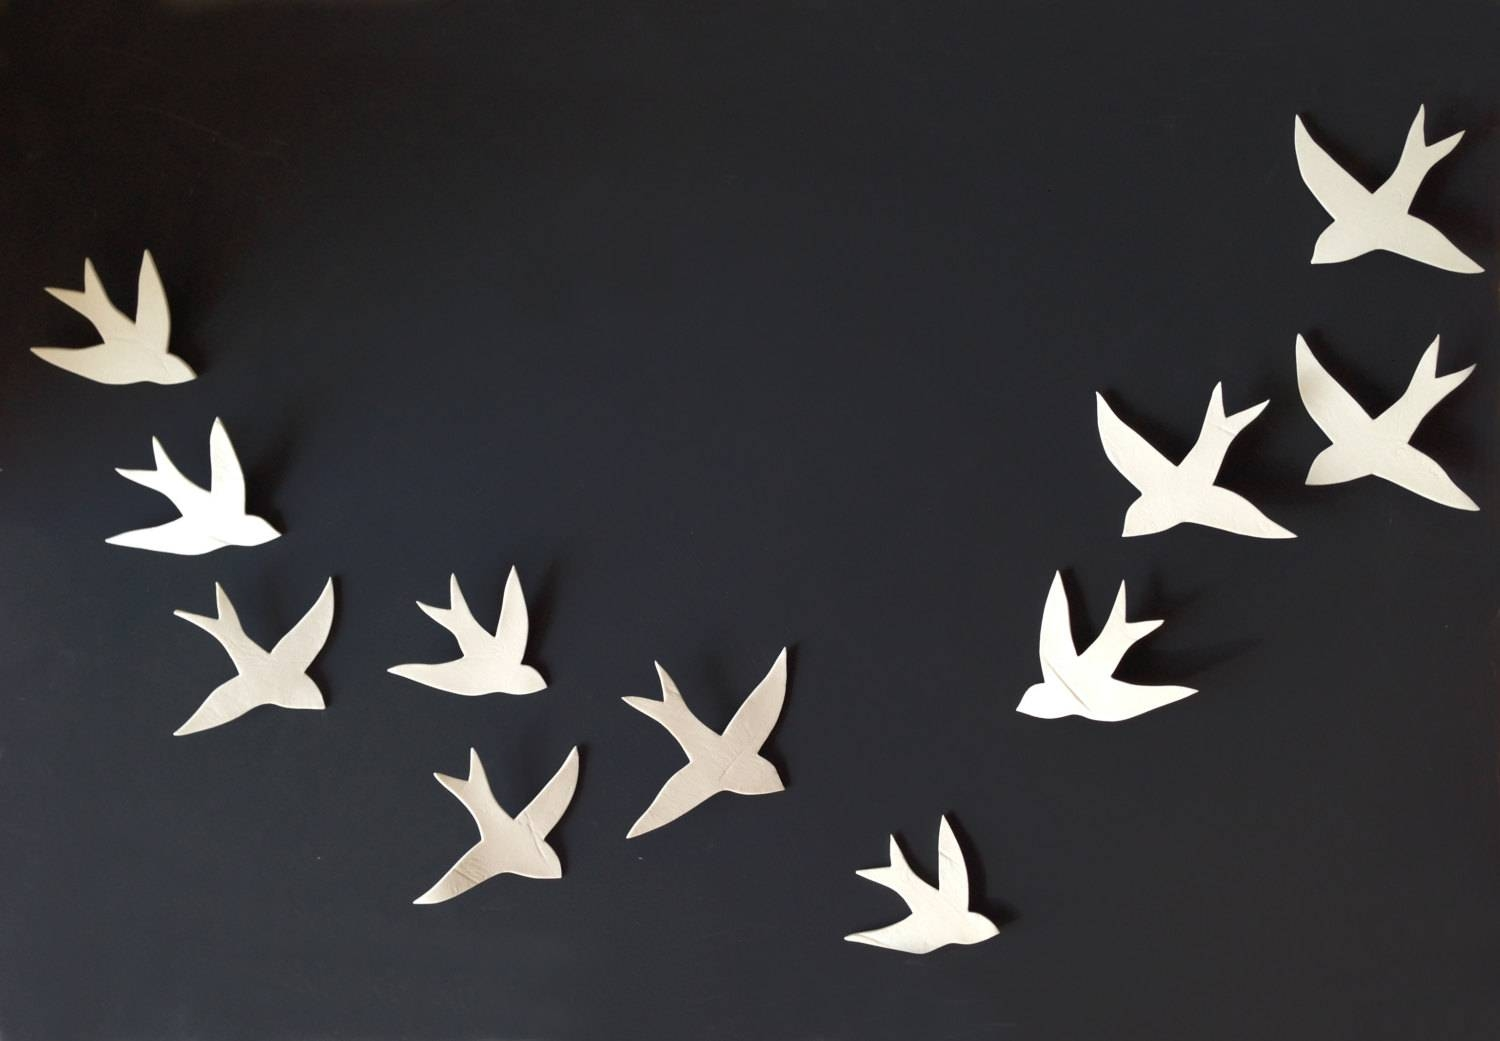 Flock 11 Porcelain Ceramic Wall Art Swallows Bird Wall With Regard To Recent Ceramic Bird Wall Art (View 18 of 30)